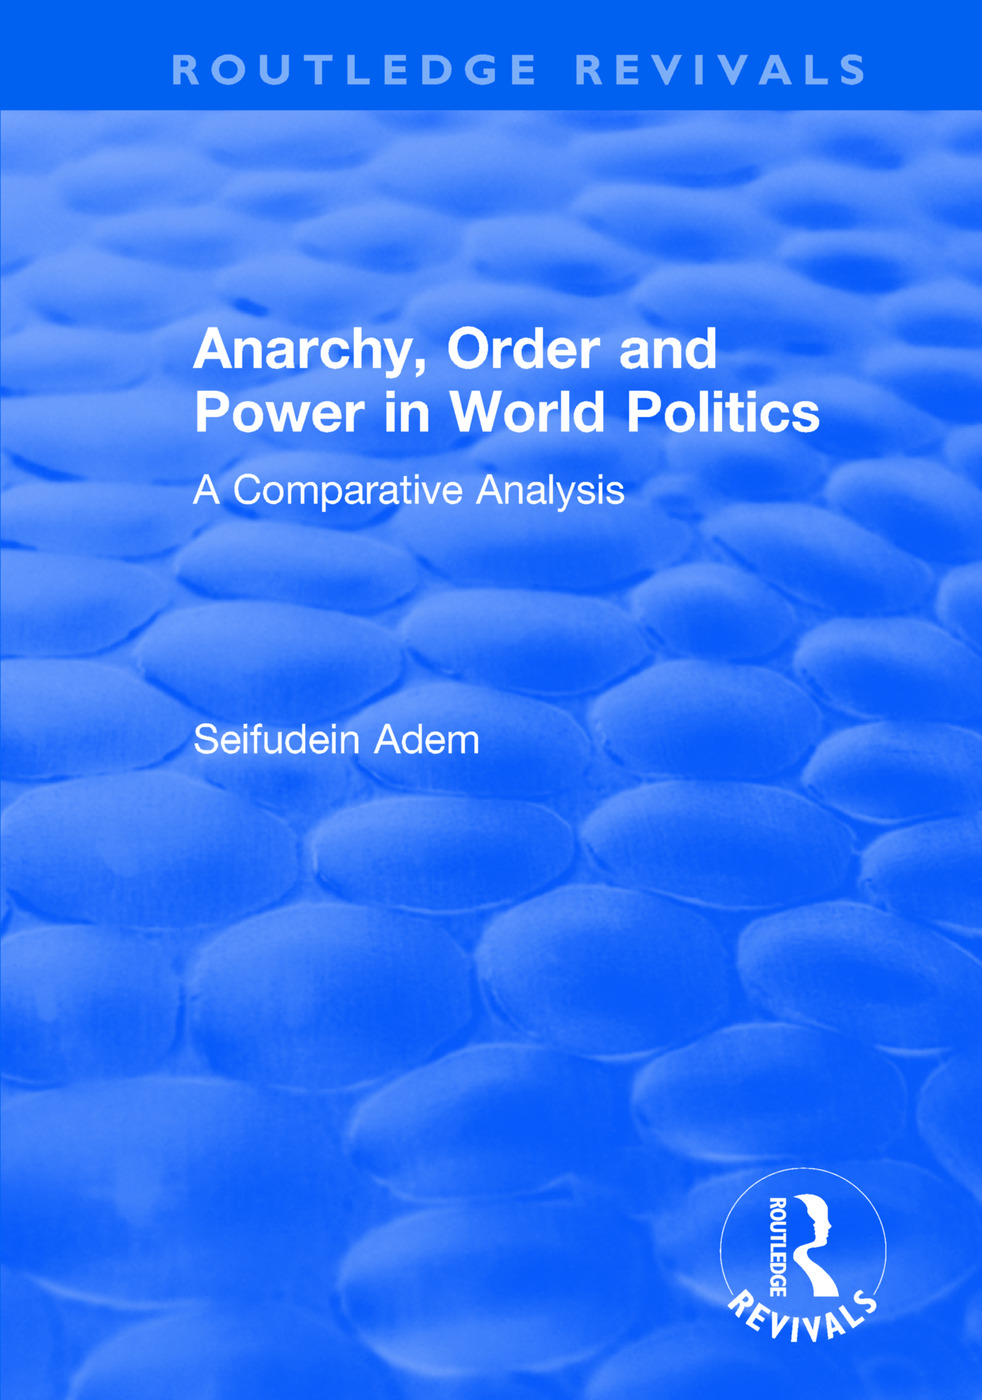 Anarchy, Order and Power in World Politics